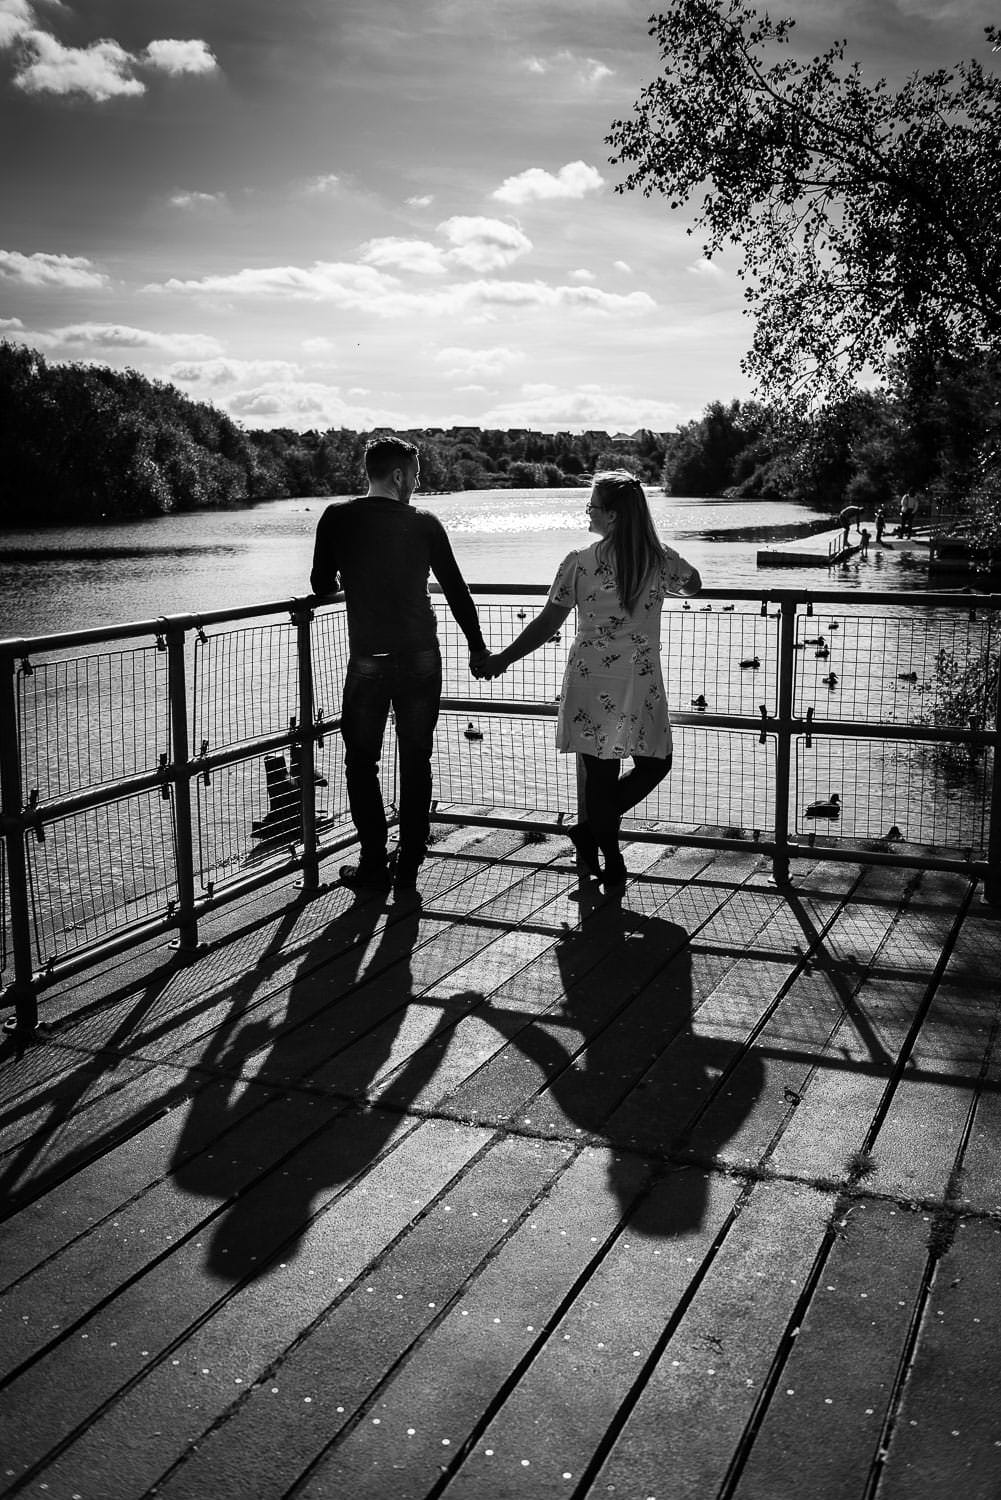 Pre wedding photoshoot, engaged, wedding day planning, couple holding hands on summers day at riverbank